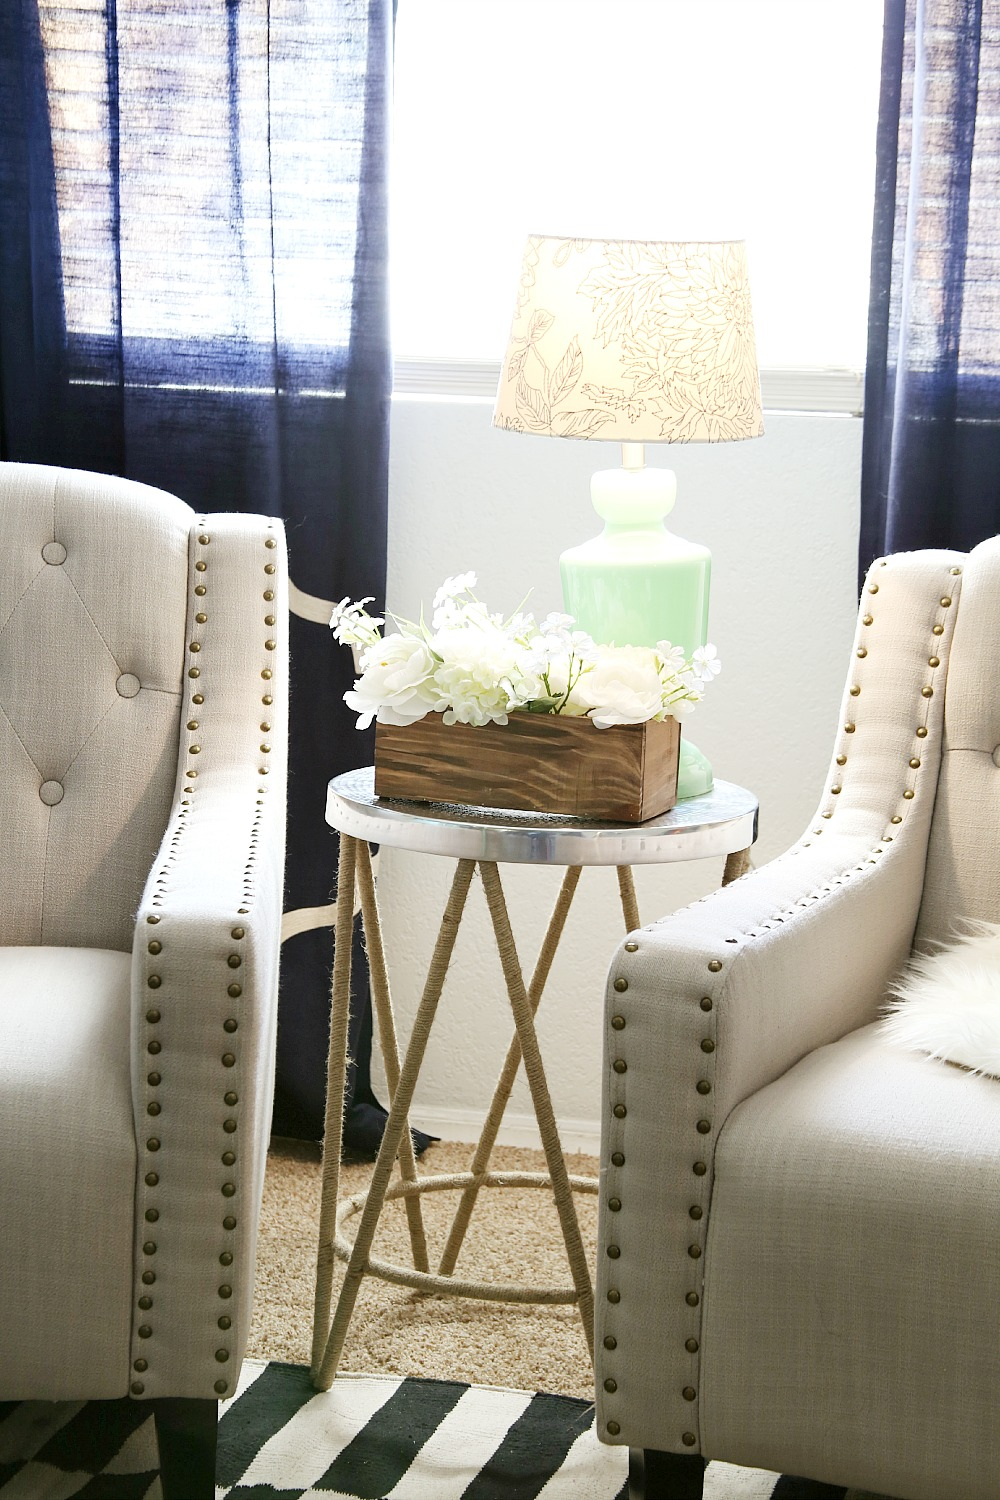 tips how style end table sitting area tier accent target found this cute and also lamp floral piece love the pop color brought space flowers all glass coffee white metal real